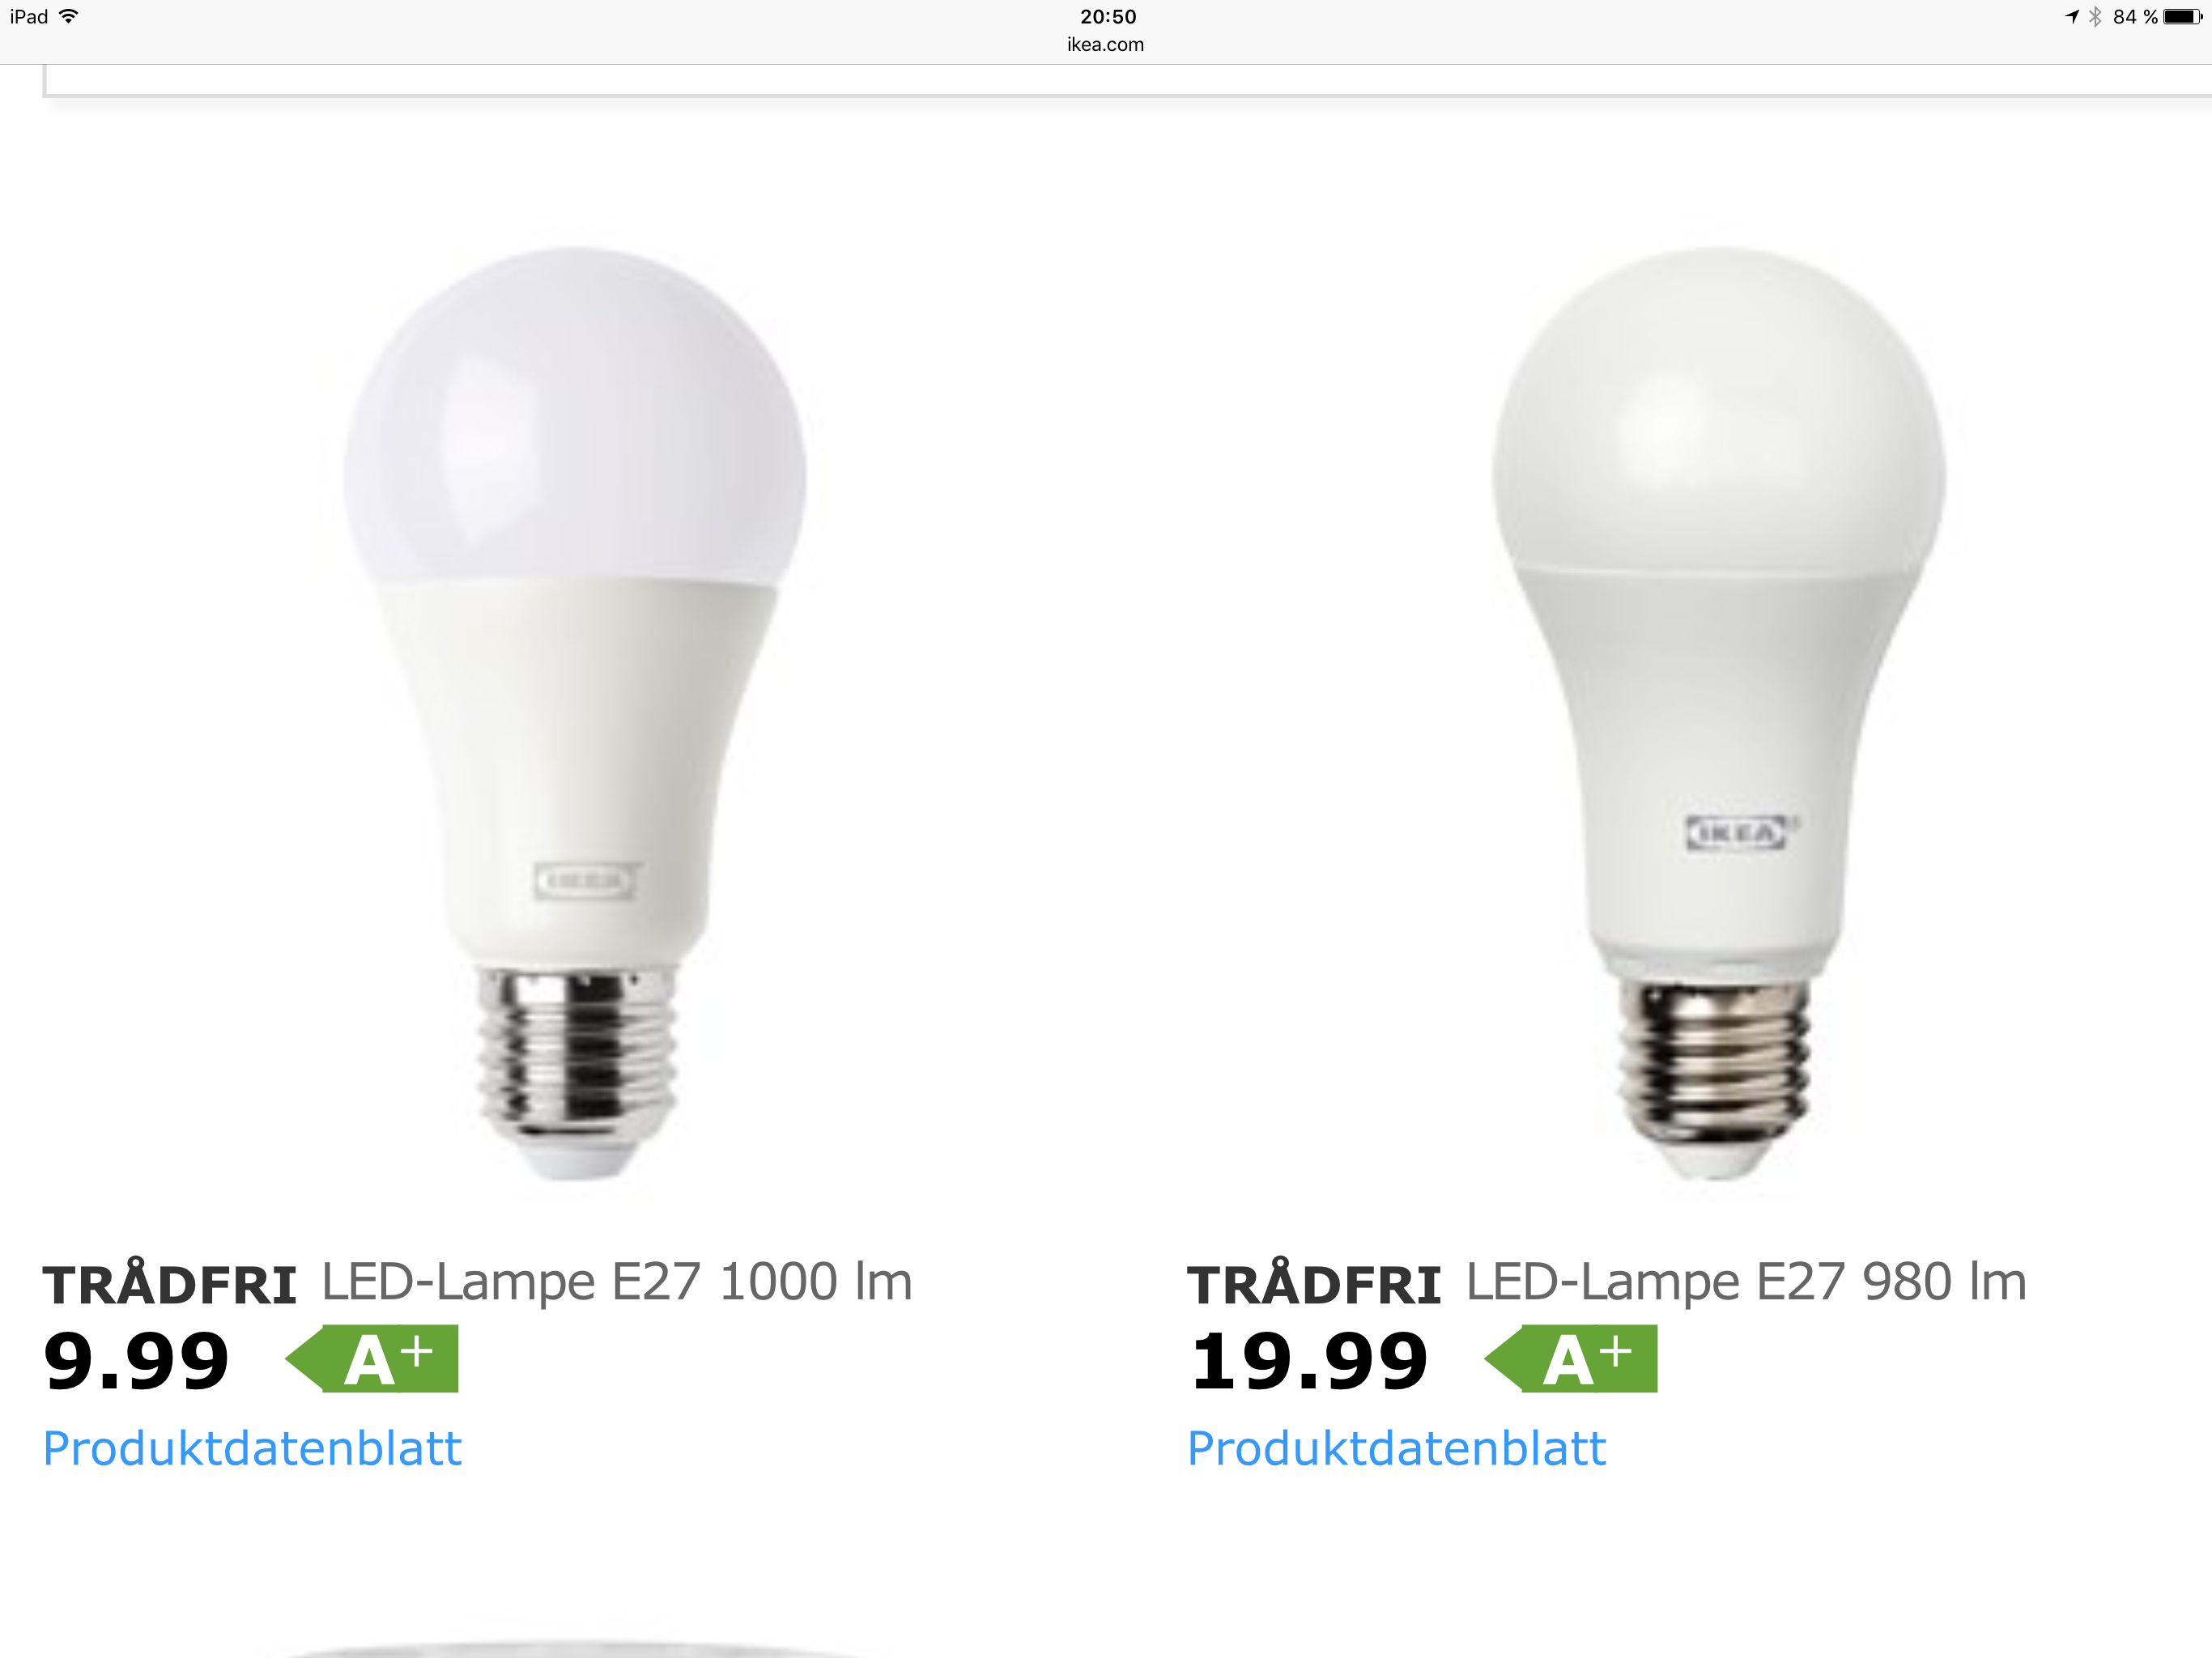 ikea bringt zigbee lampen smart home welt homee. Black Bedroom Furniture Sets. Home Design Ideas